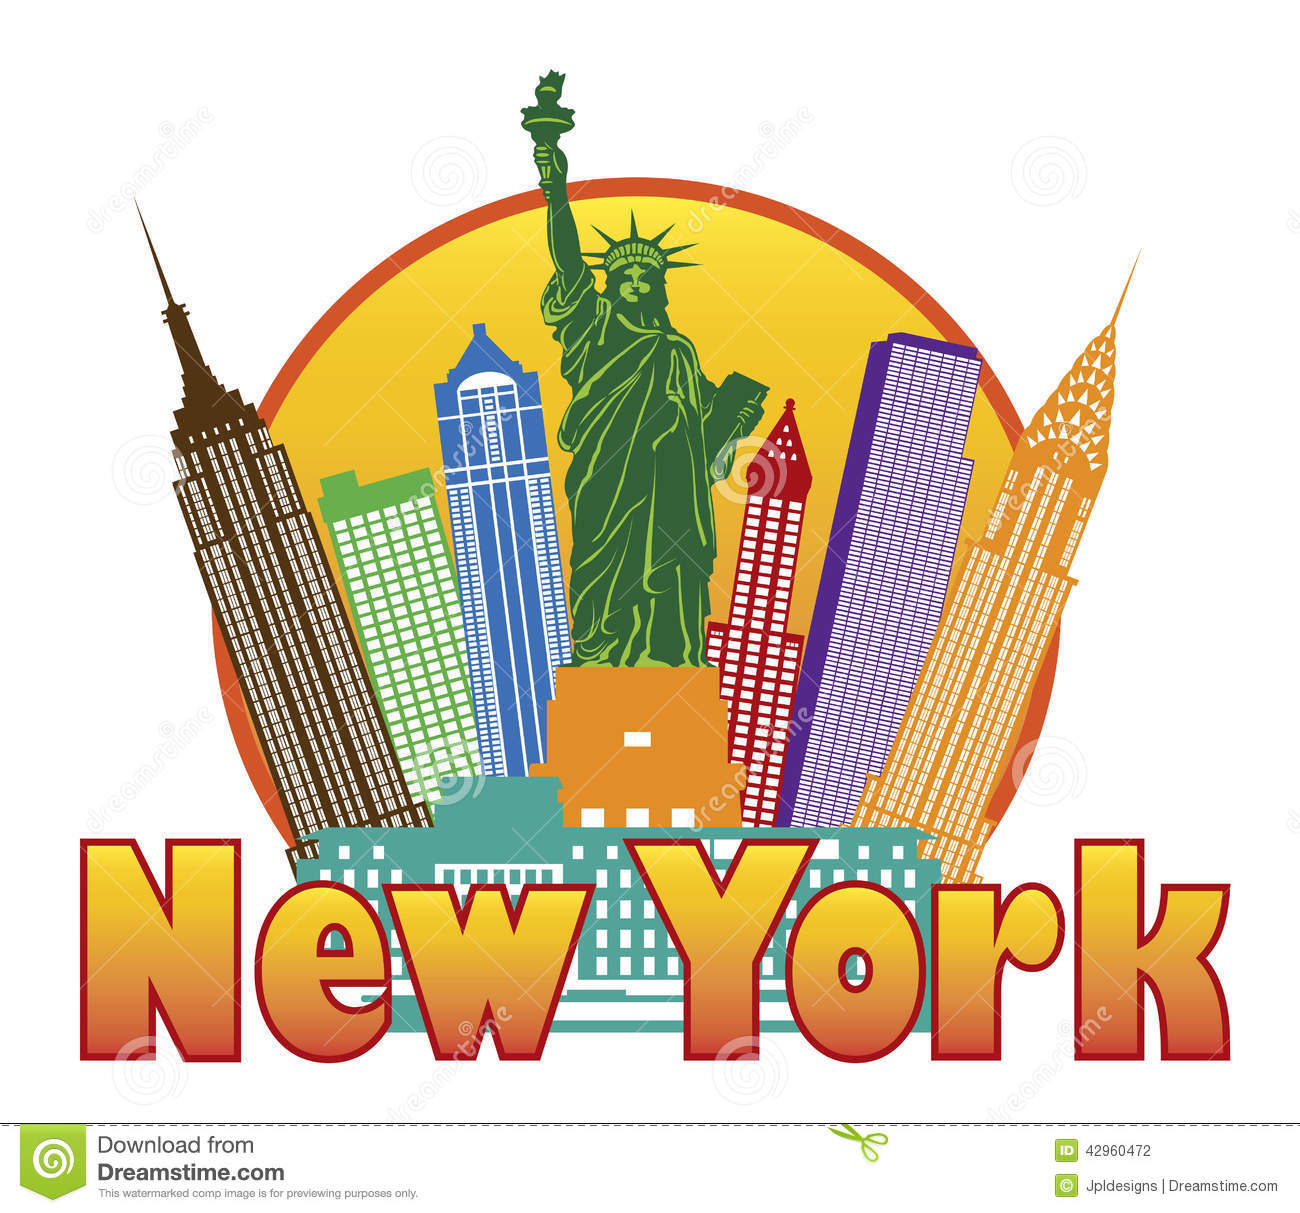 New York clipart #3, Download drawings